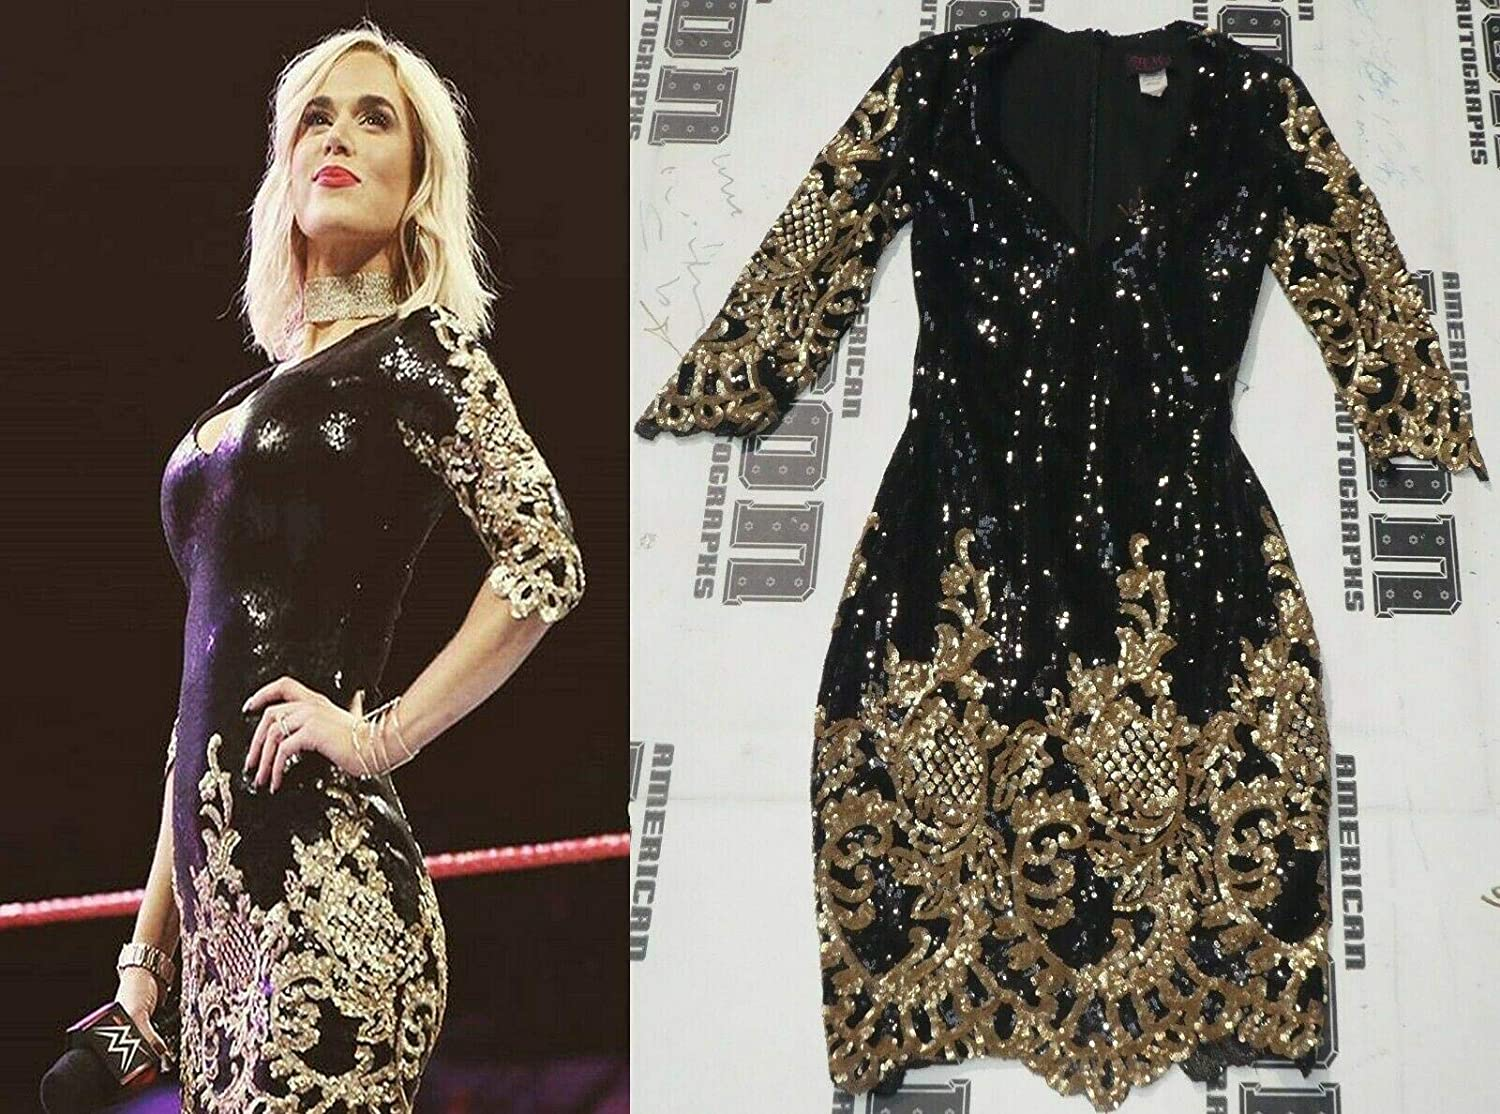 Lana Signed WWE Raw Ring Worn Used Dress BAS Beckett COA Total Divas Autograph 2 - Autographed Wrestling Miscellaneous Items